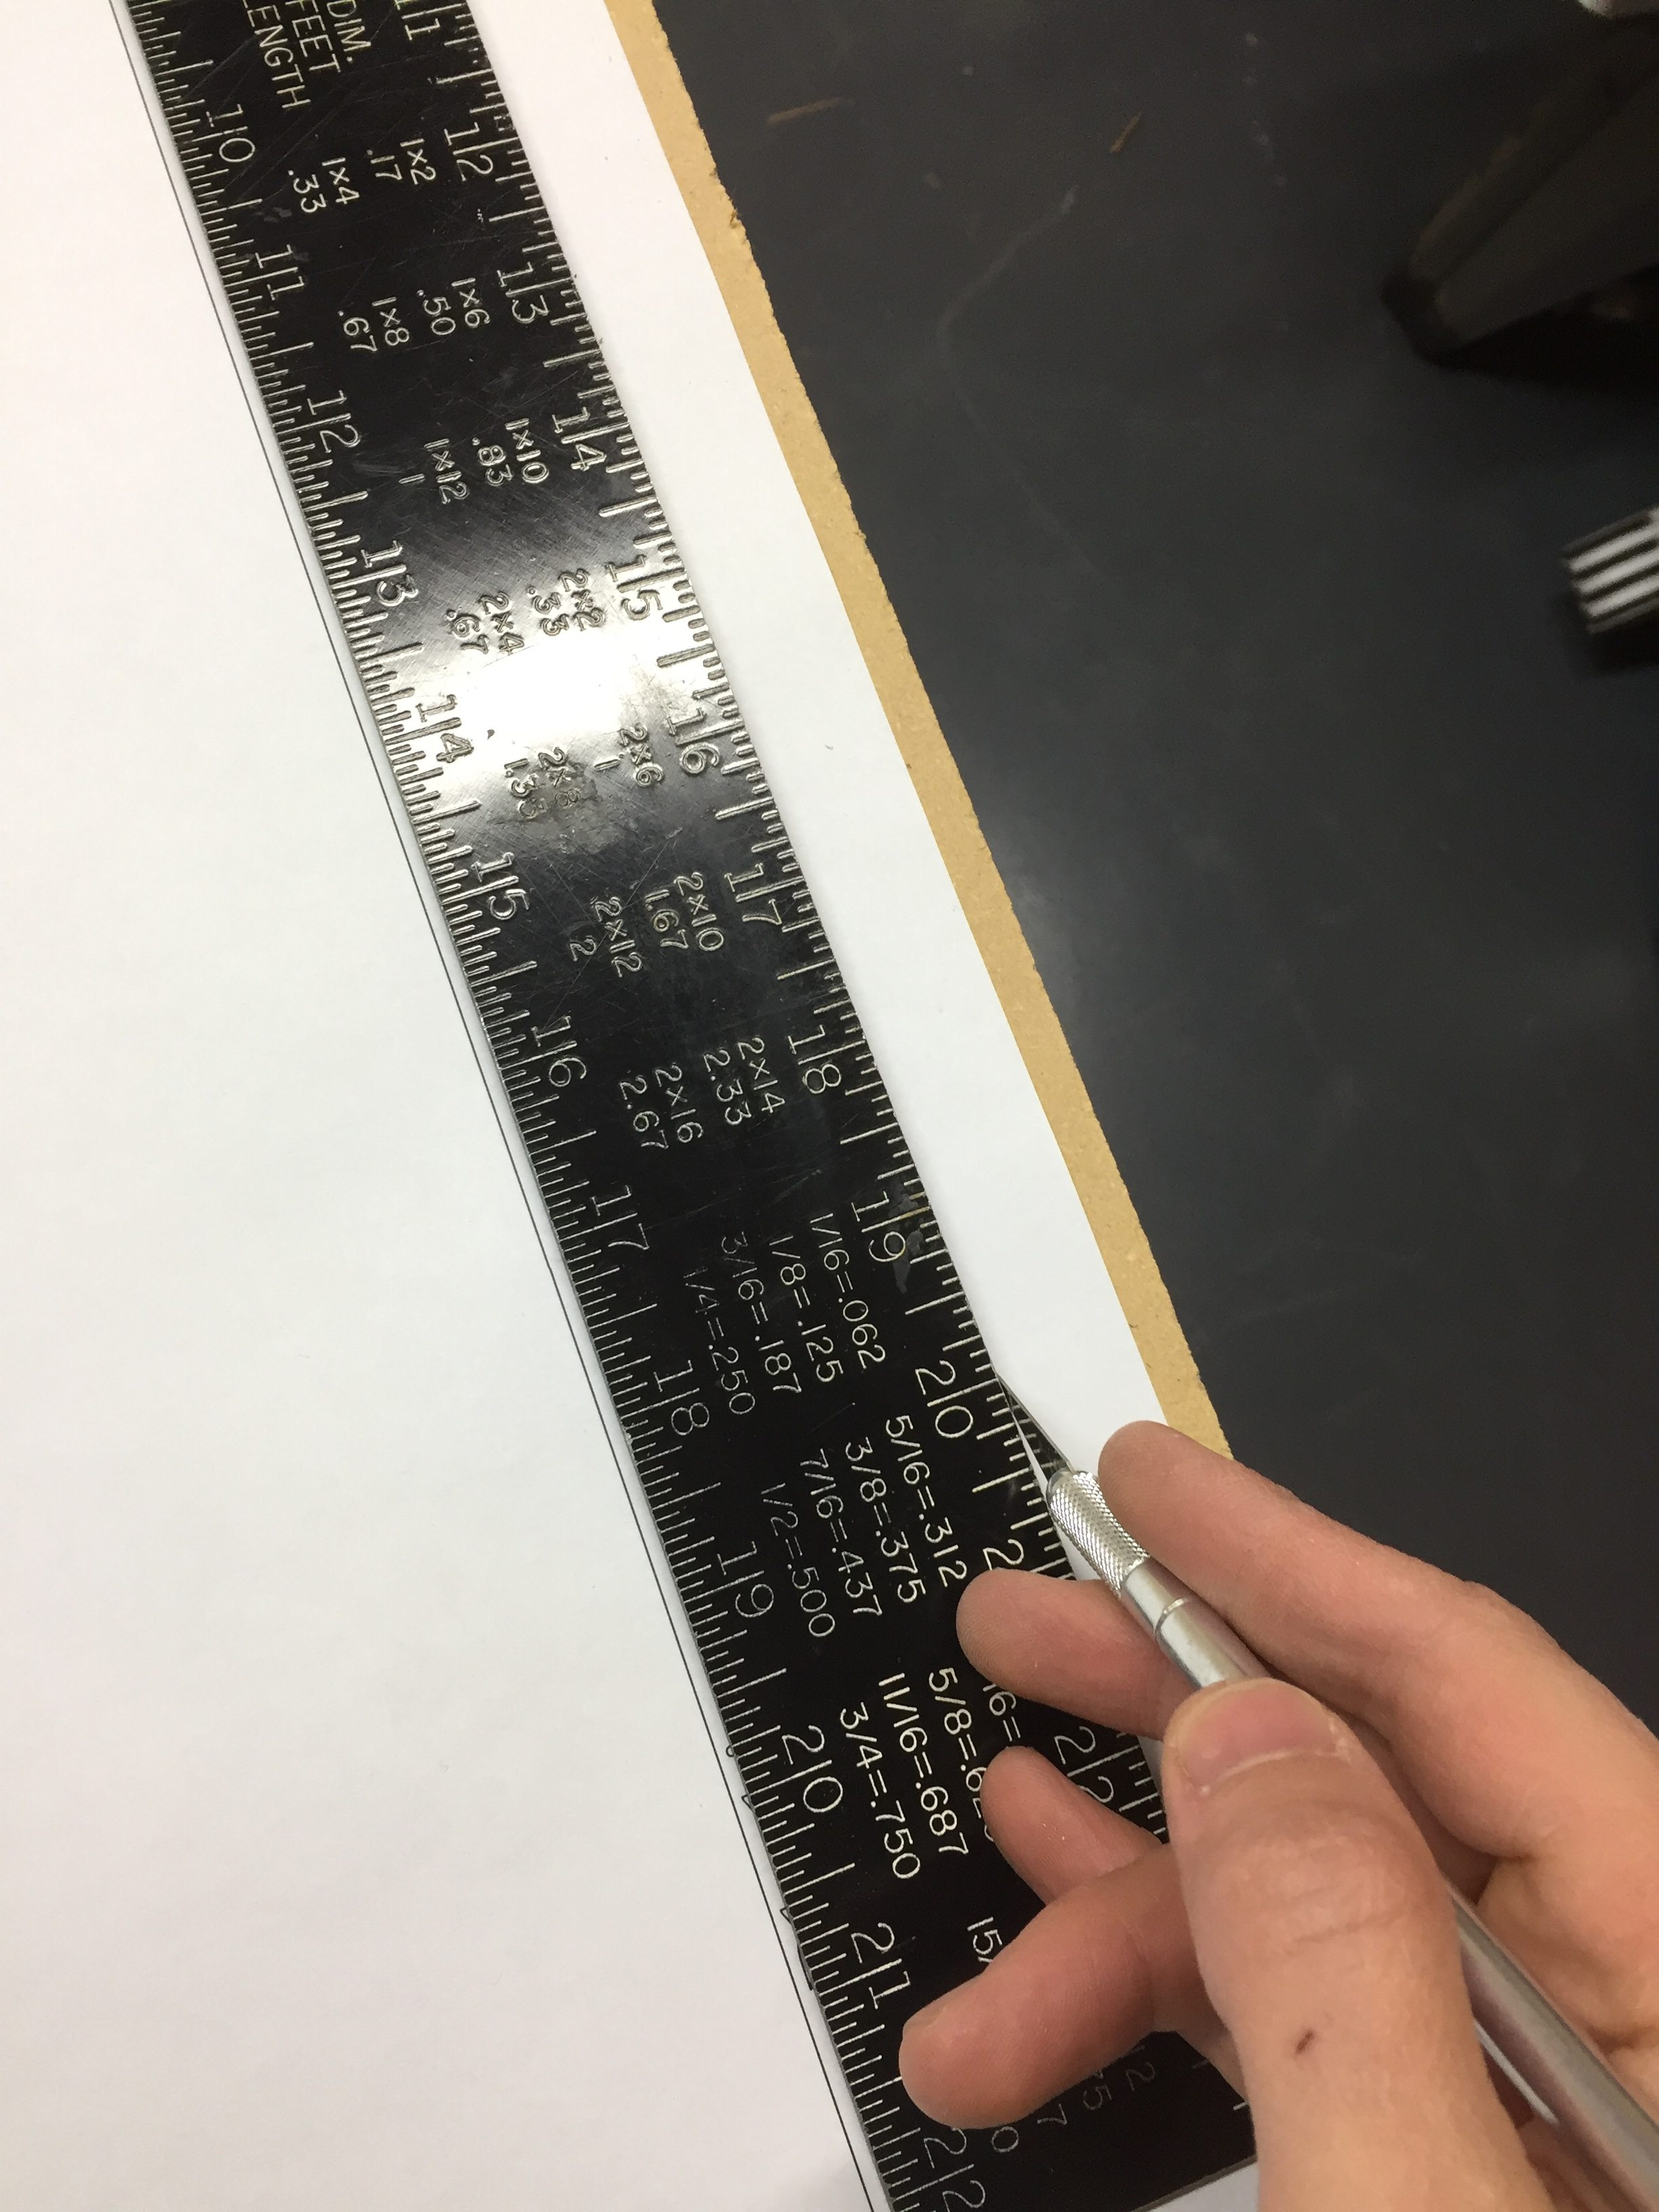 Donkey Kong Arcade Machine: Trimming the Template